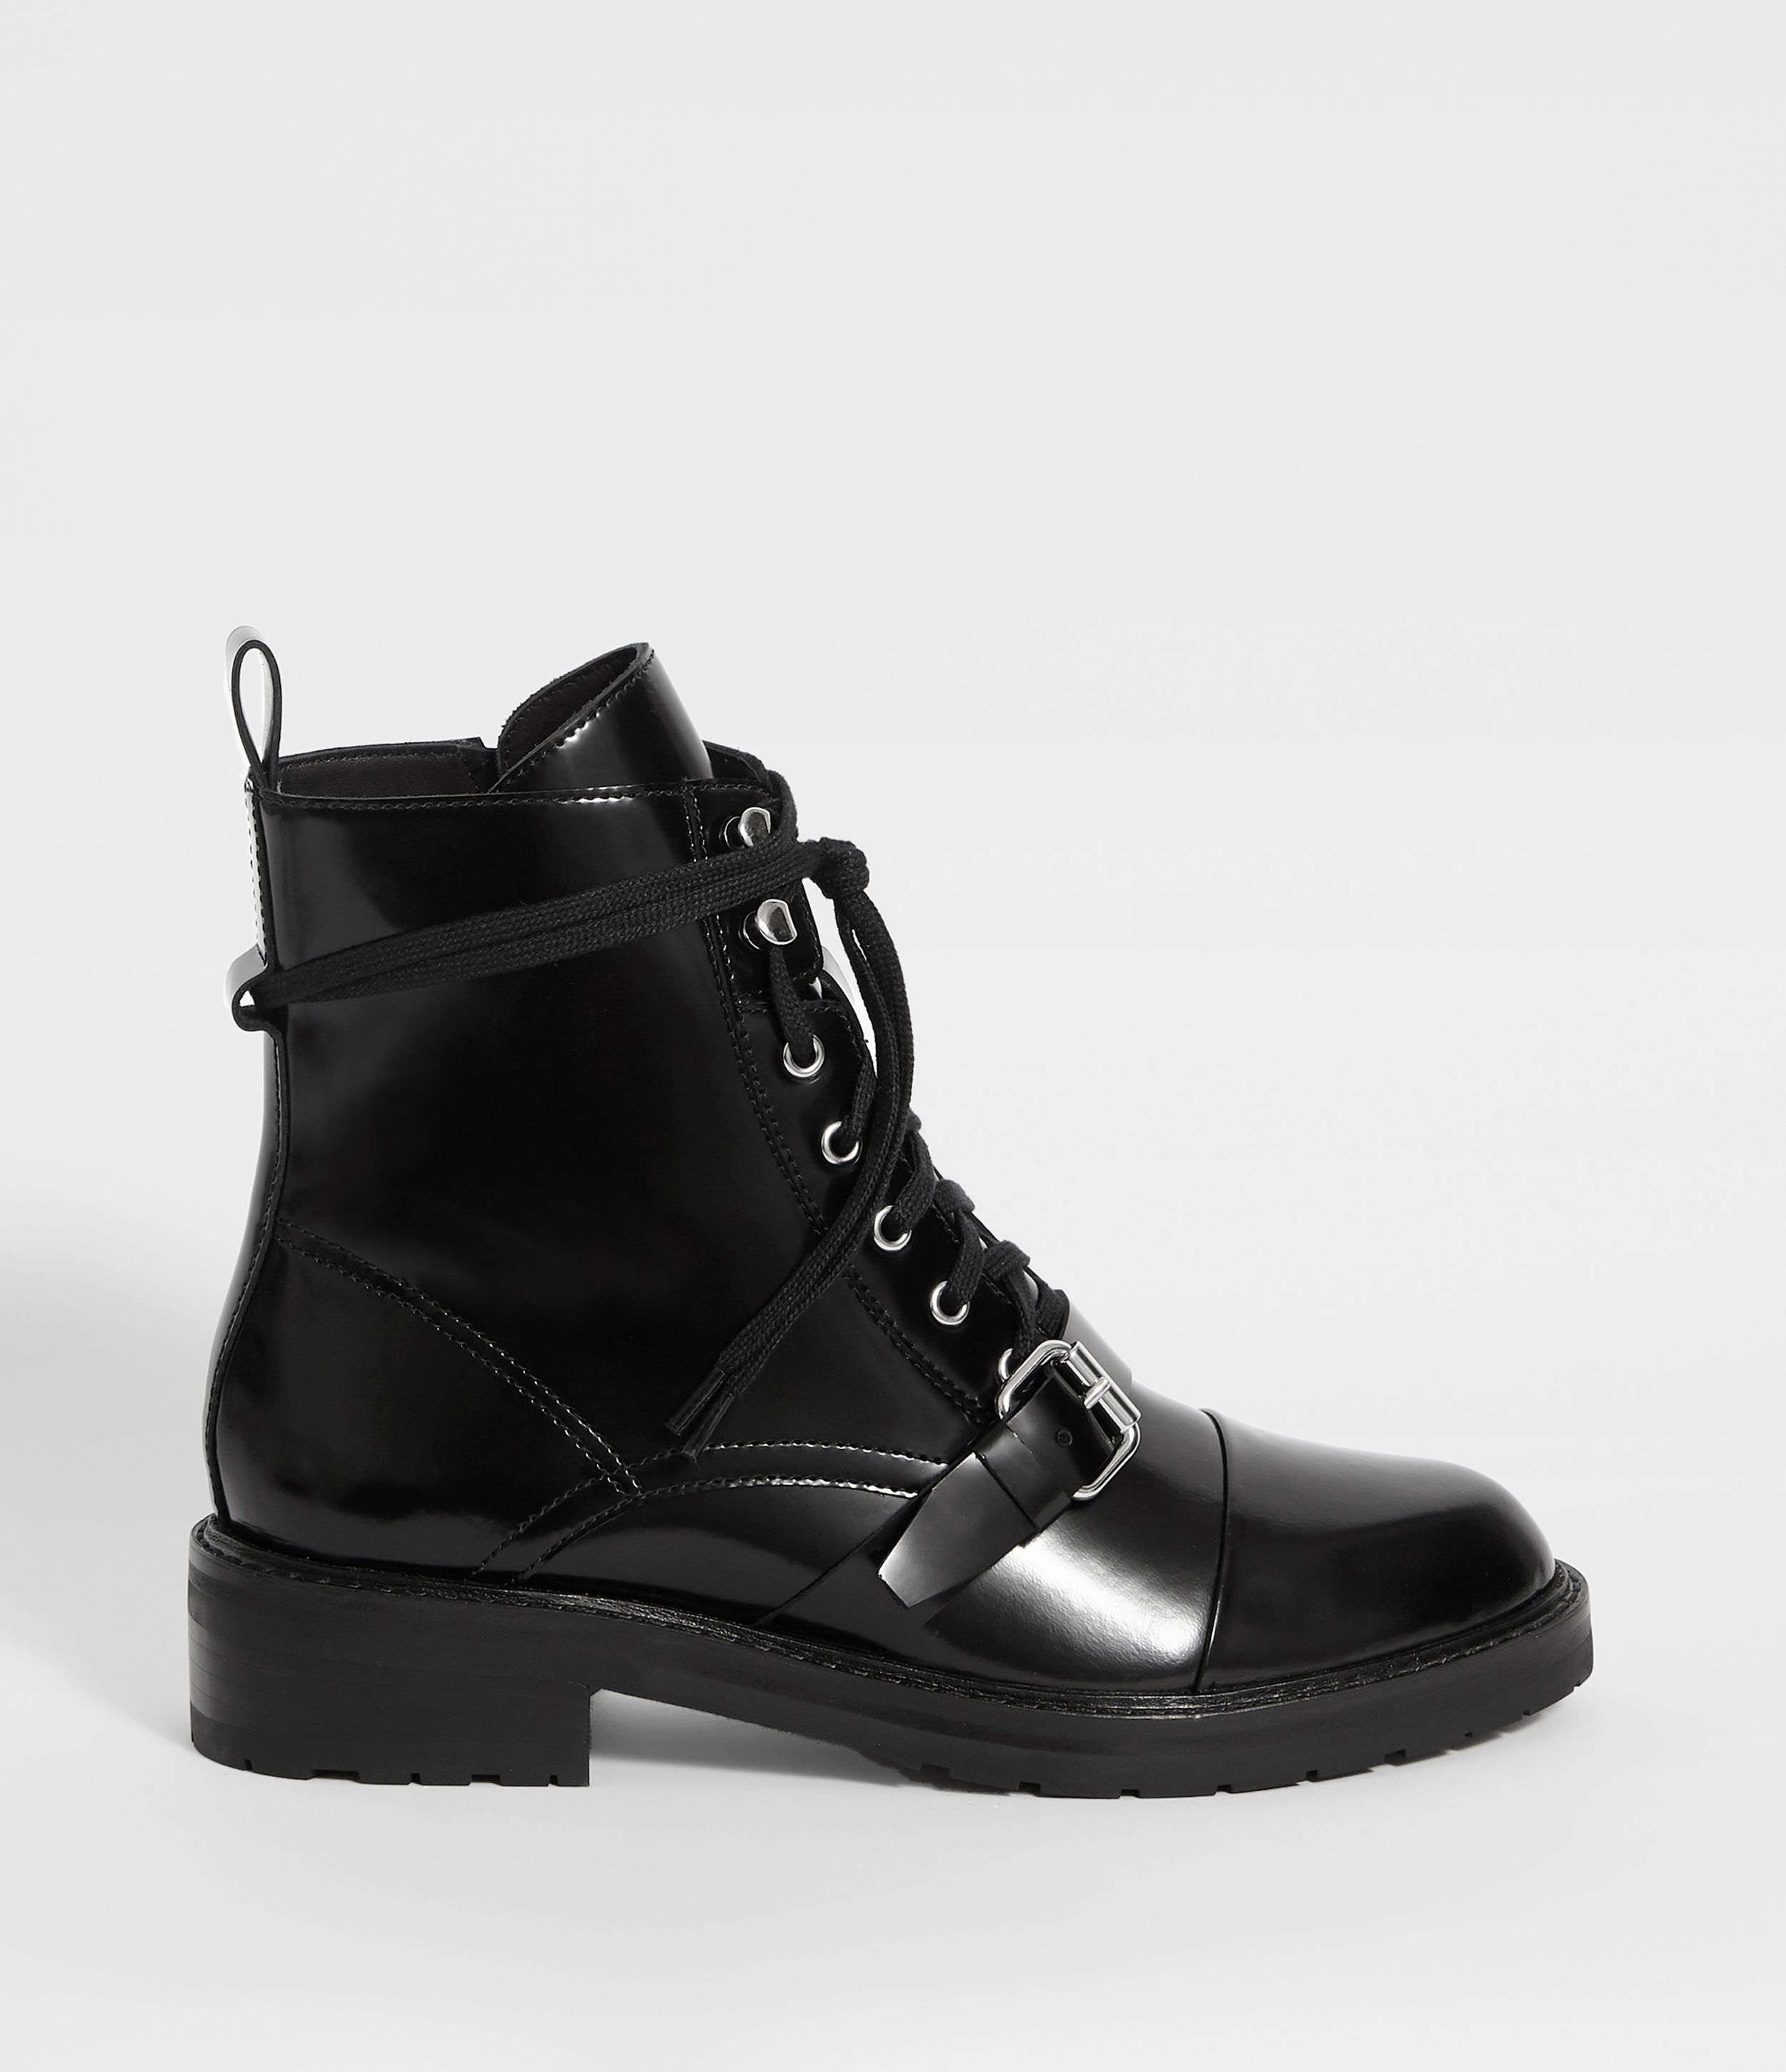 AllSaints Donita Leather Ankle Boots